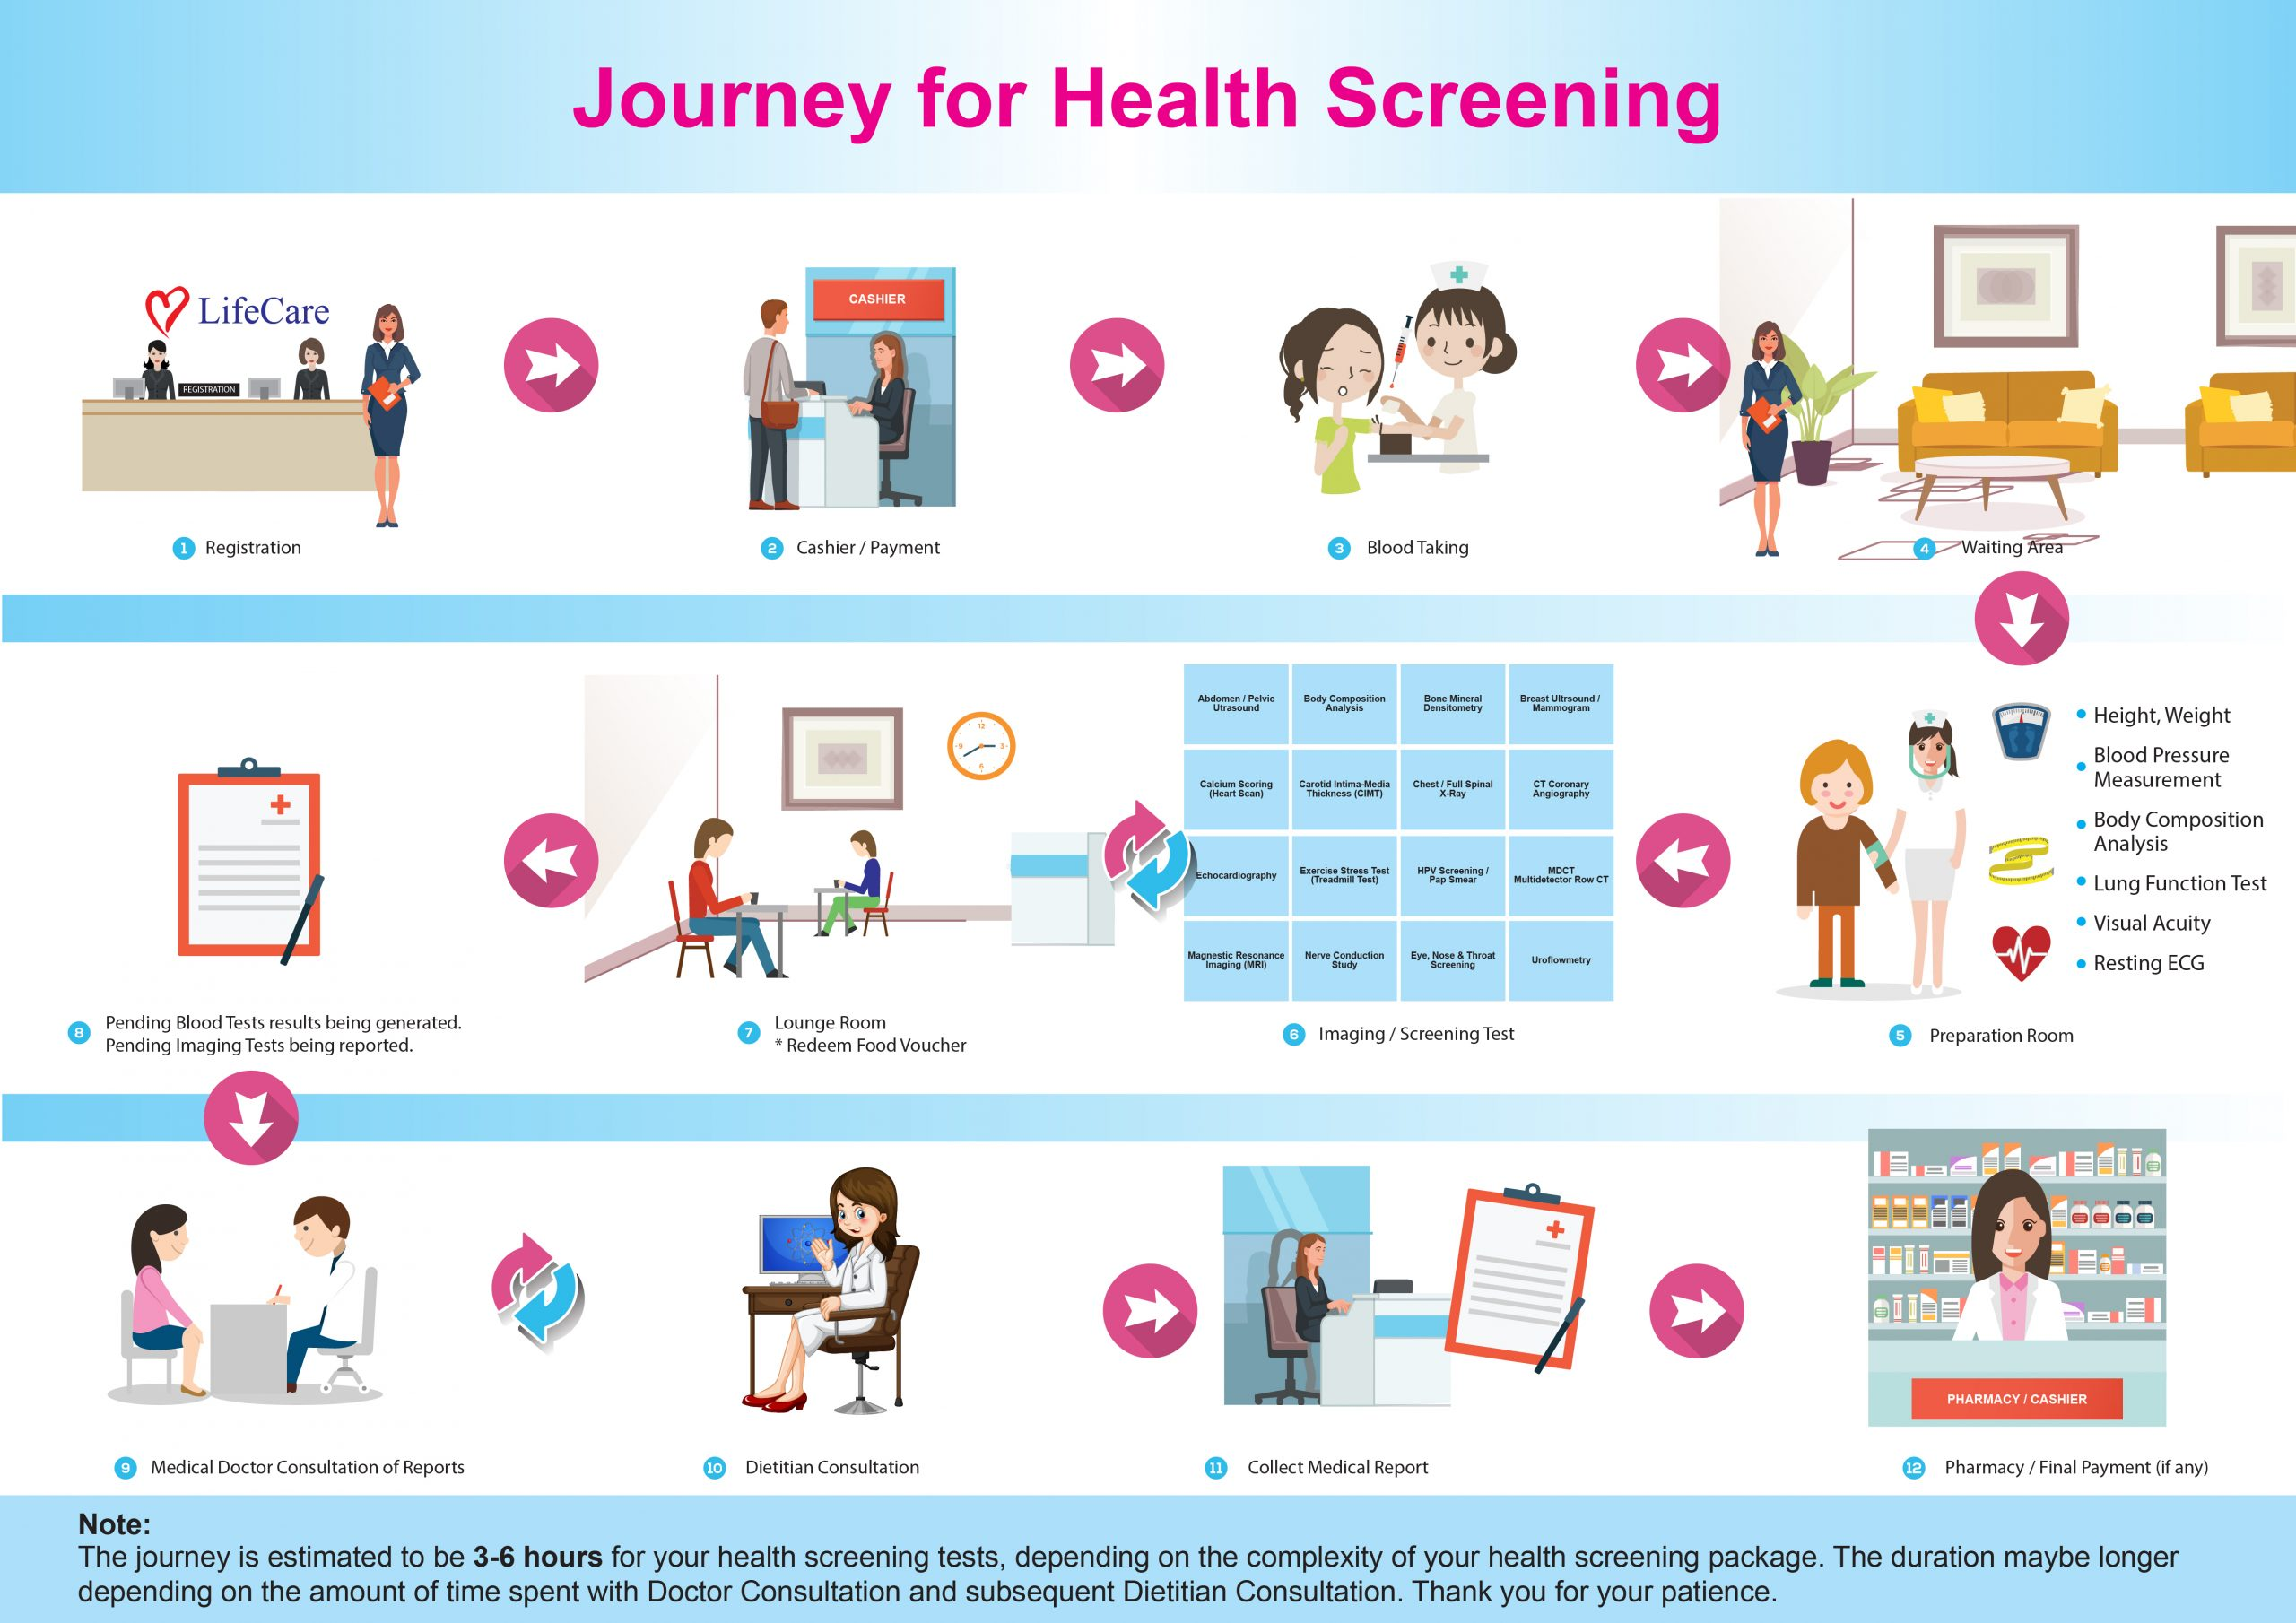 Health Screening Journey_Level 1